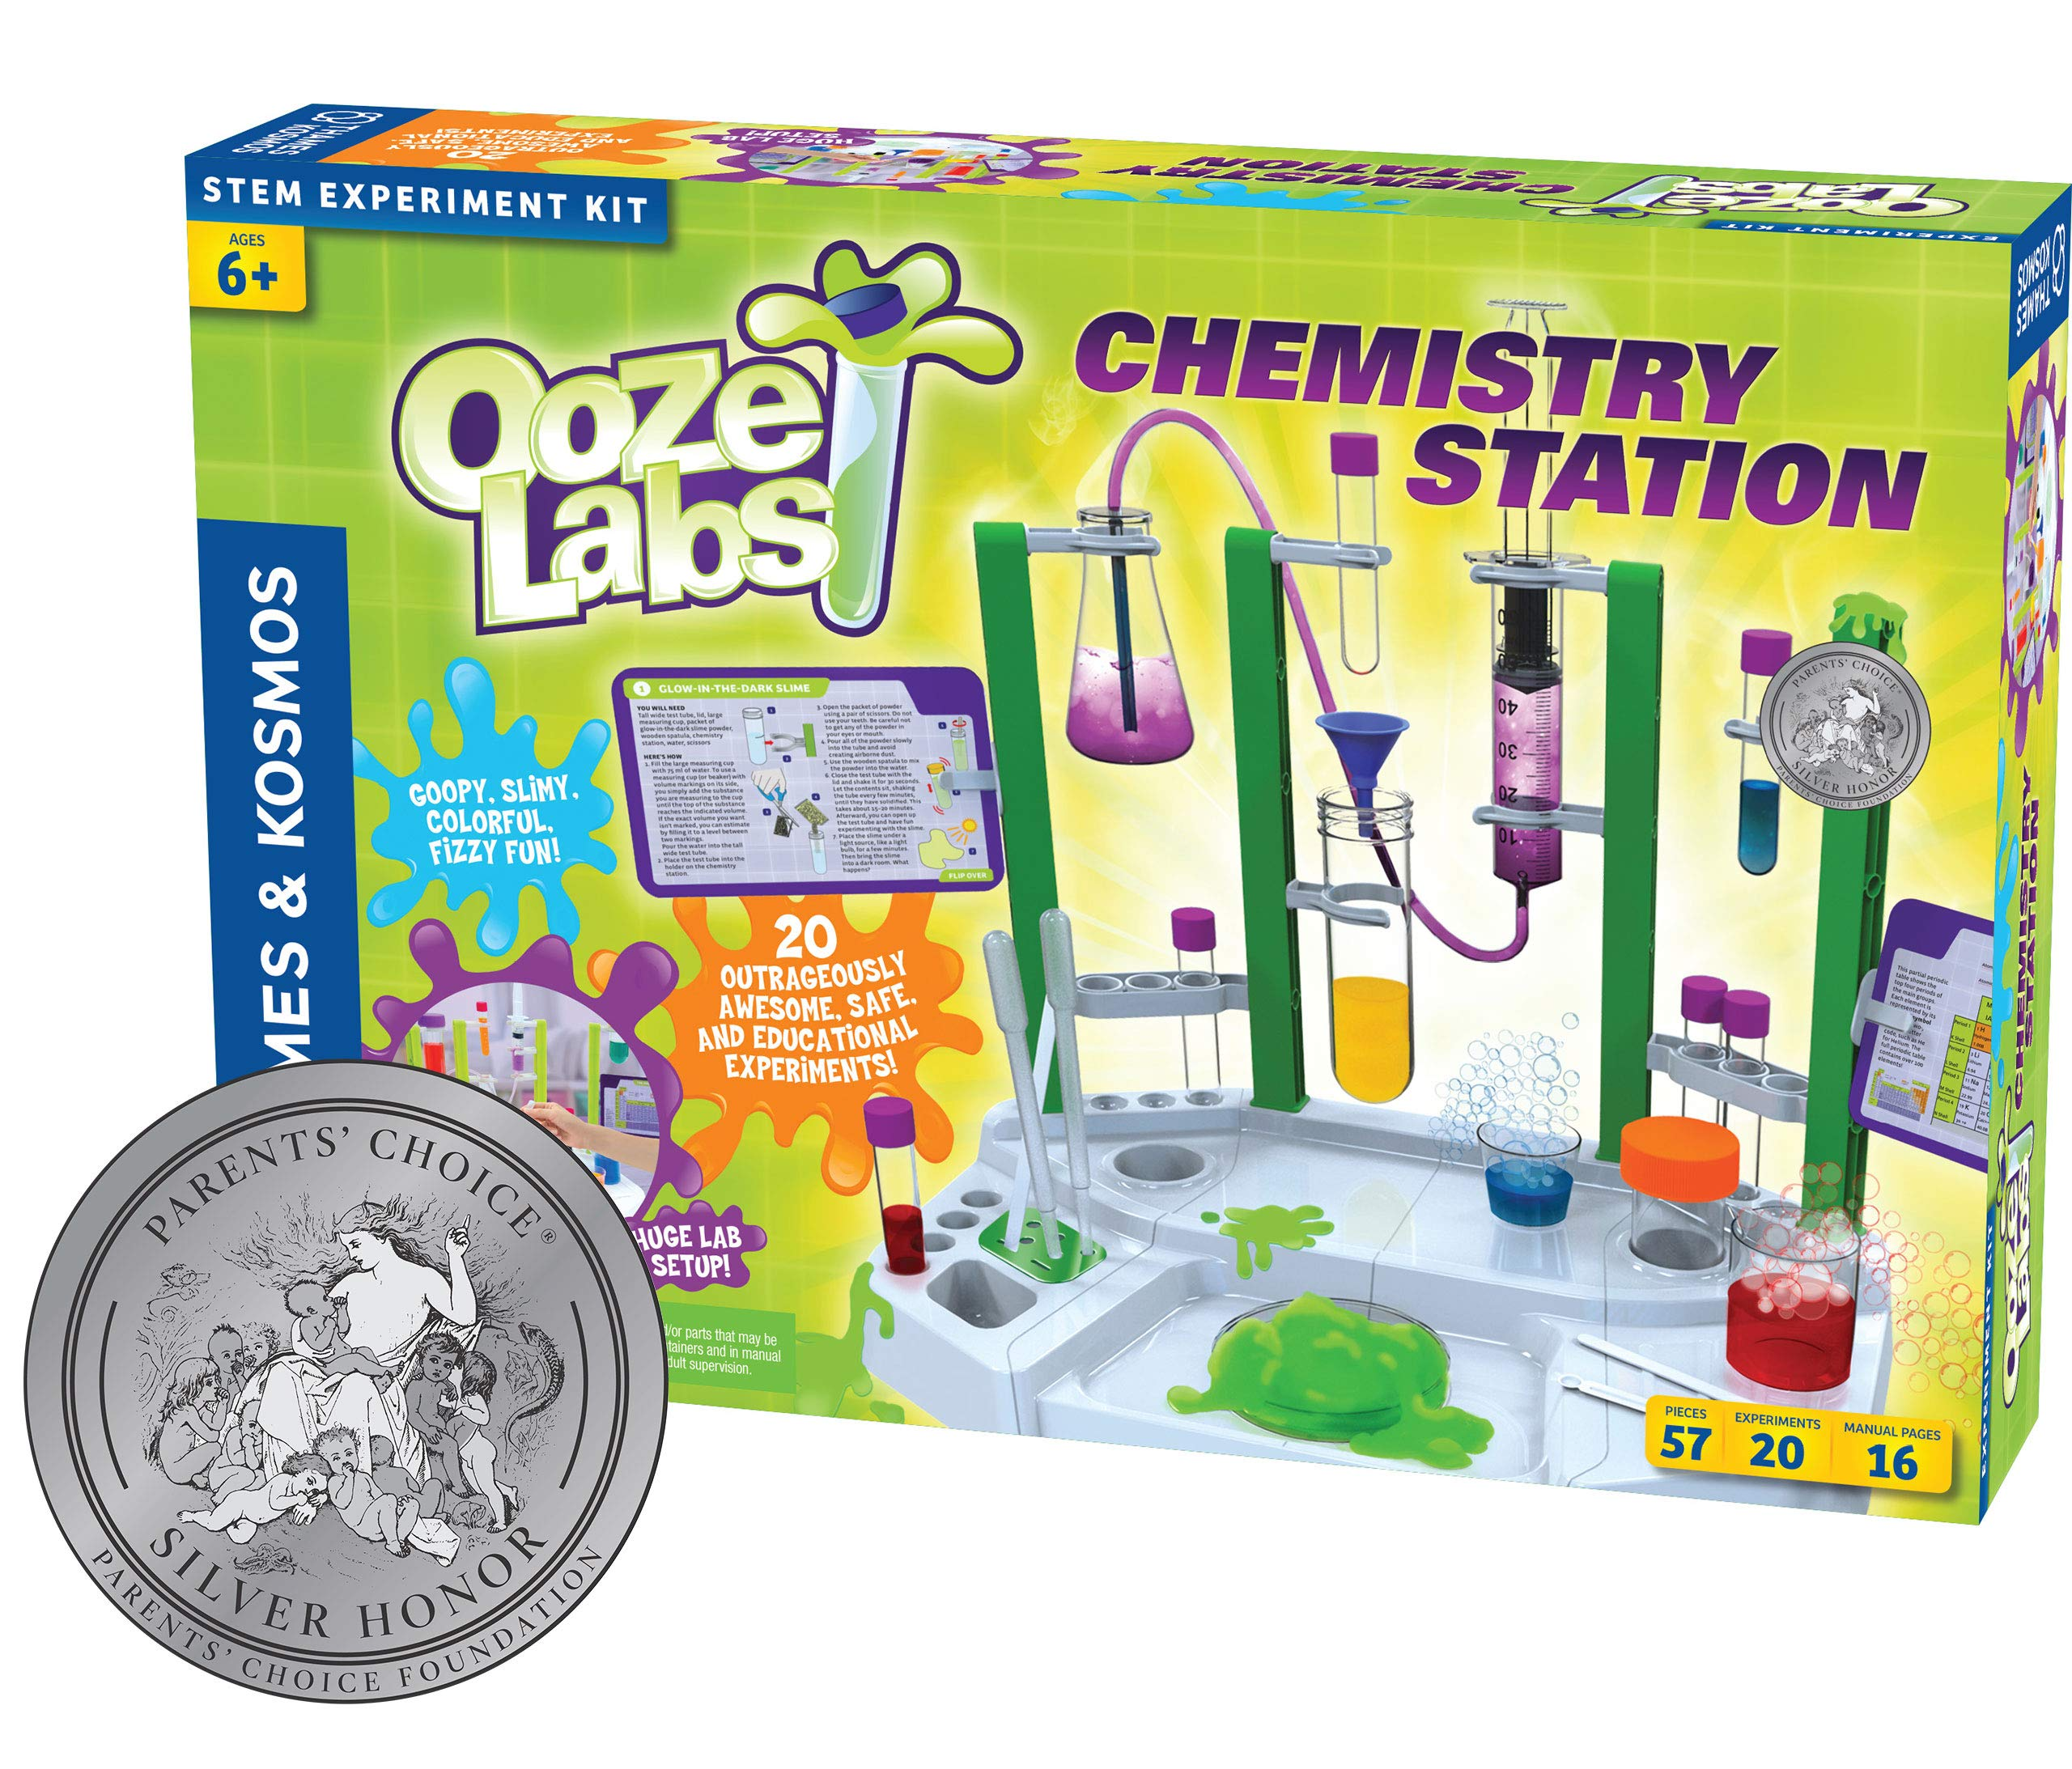 Thames & Kosmos Ooze Labs Chemistry Station Science Experiment Kit, 20 Non-Hazardous Experiments Including Safe Slime, Chromatography, Acids, Bases & More by Thames & Kosmos